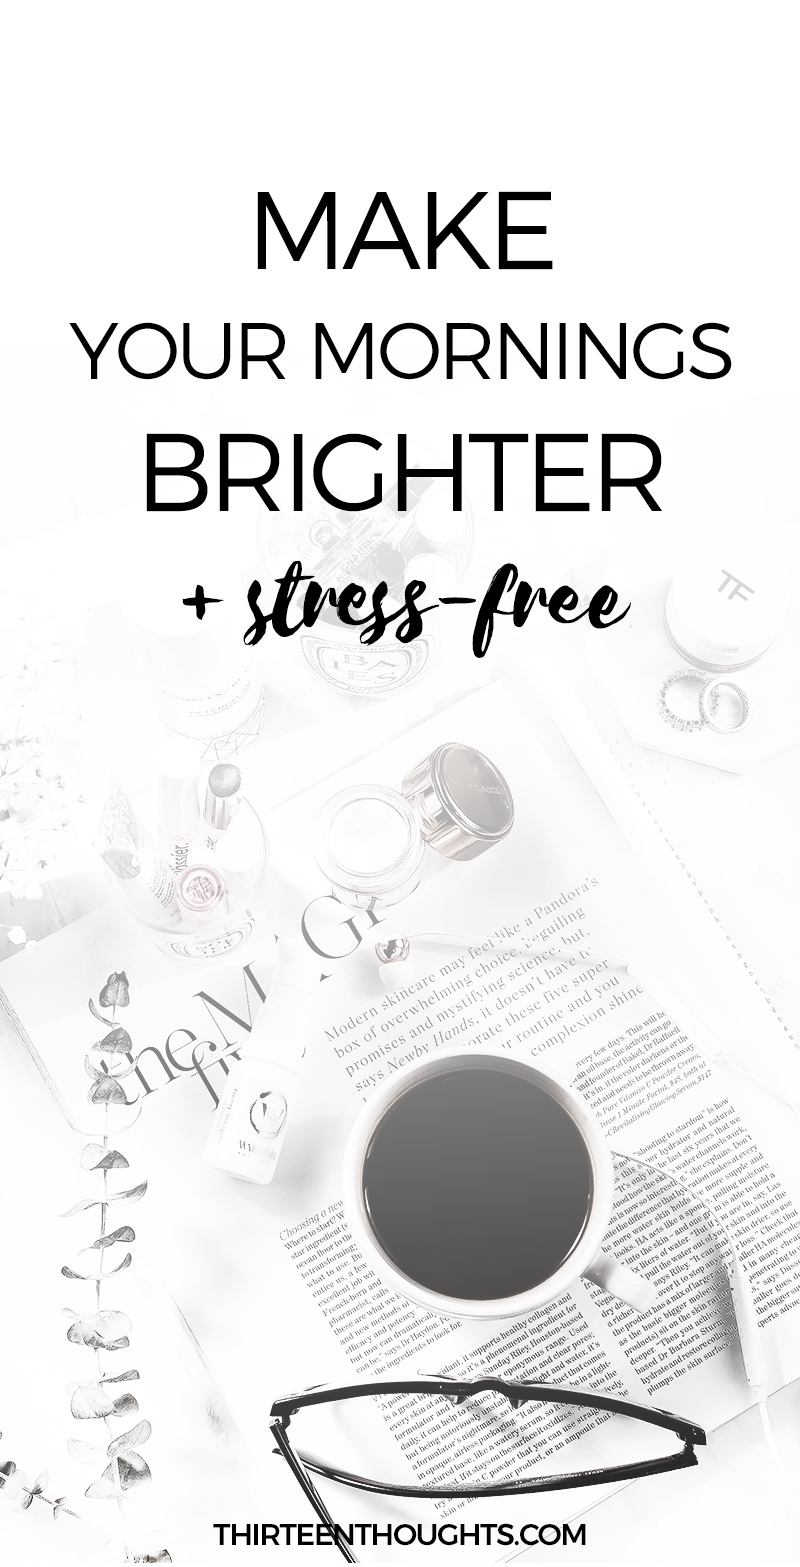 How to Make Your Mornings Brighter + Stress-Free